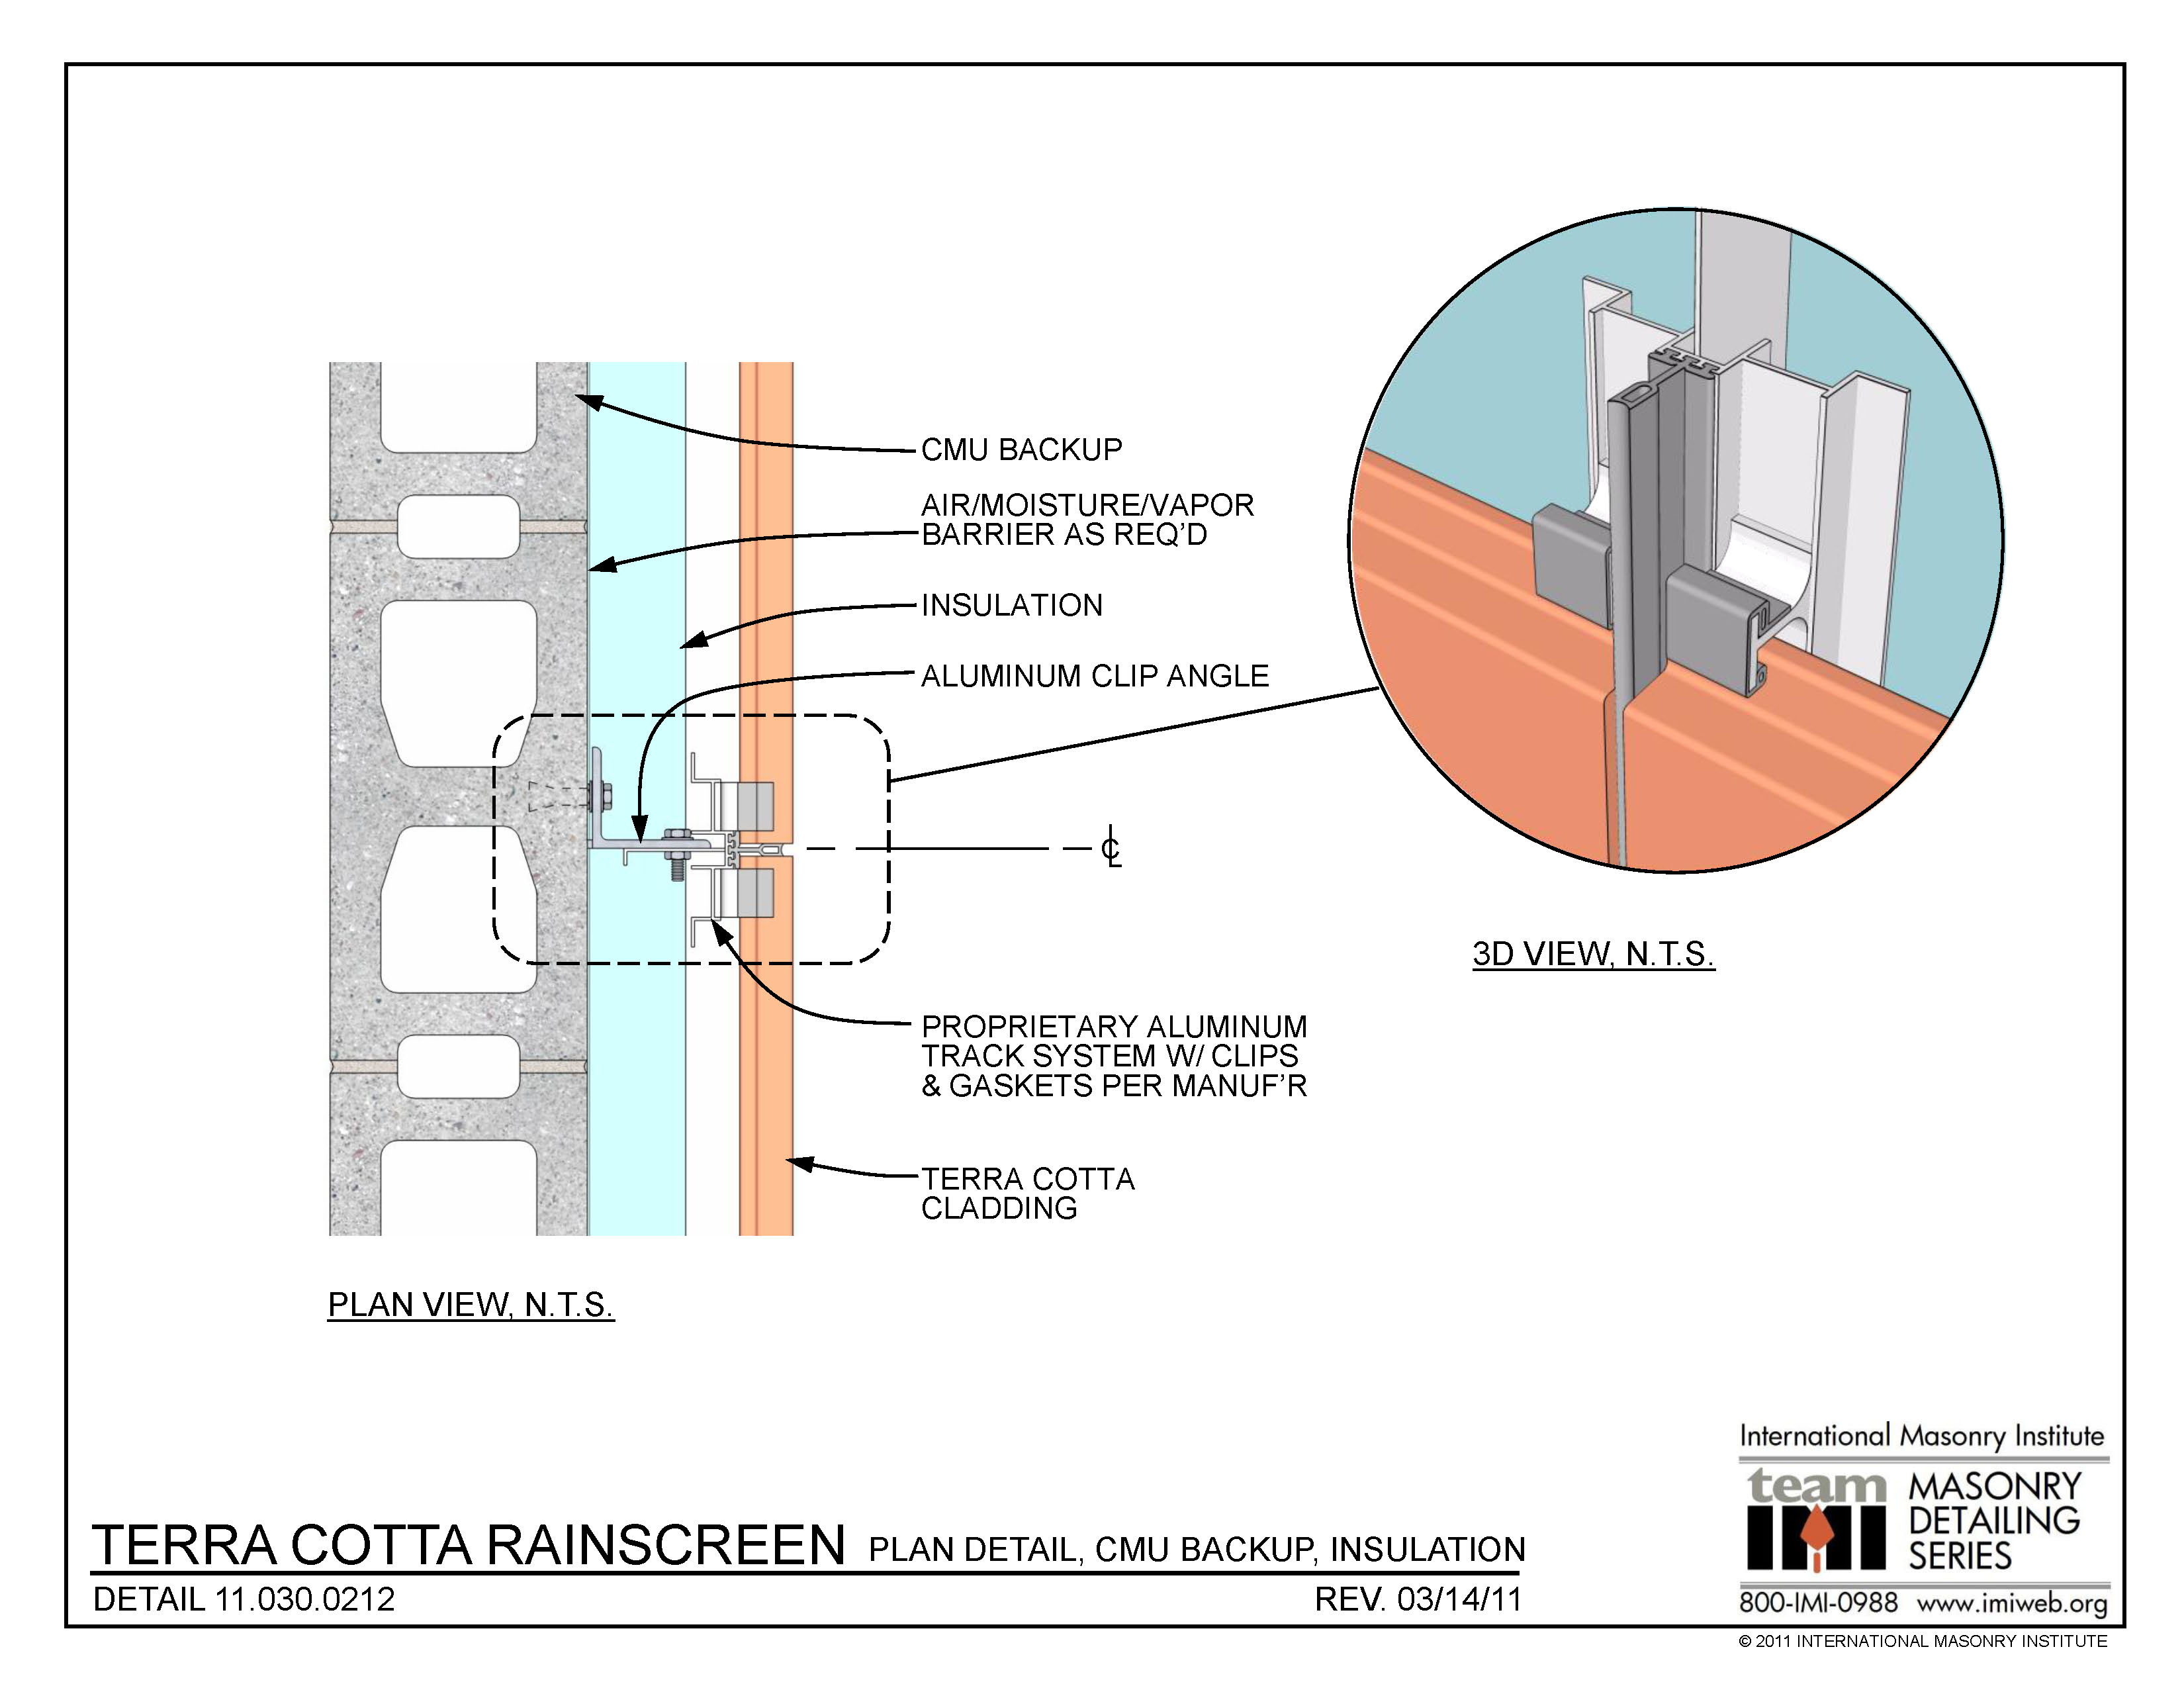 11.030.0212: Terra cotta rainscreen - Plan detail, CMU ...